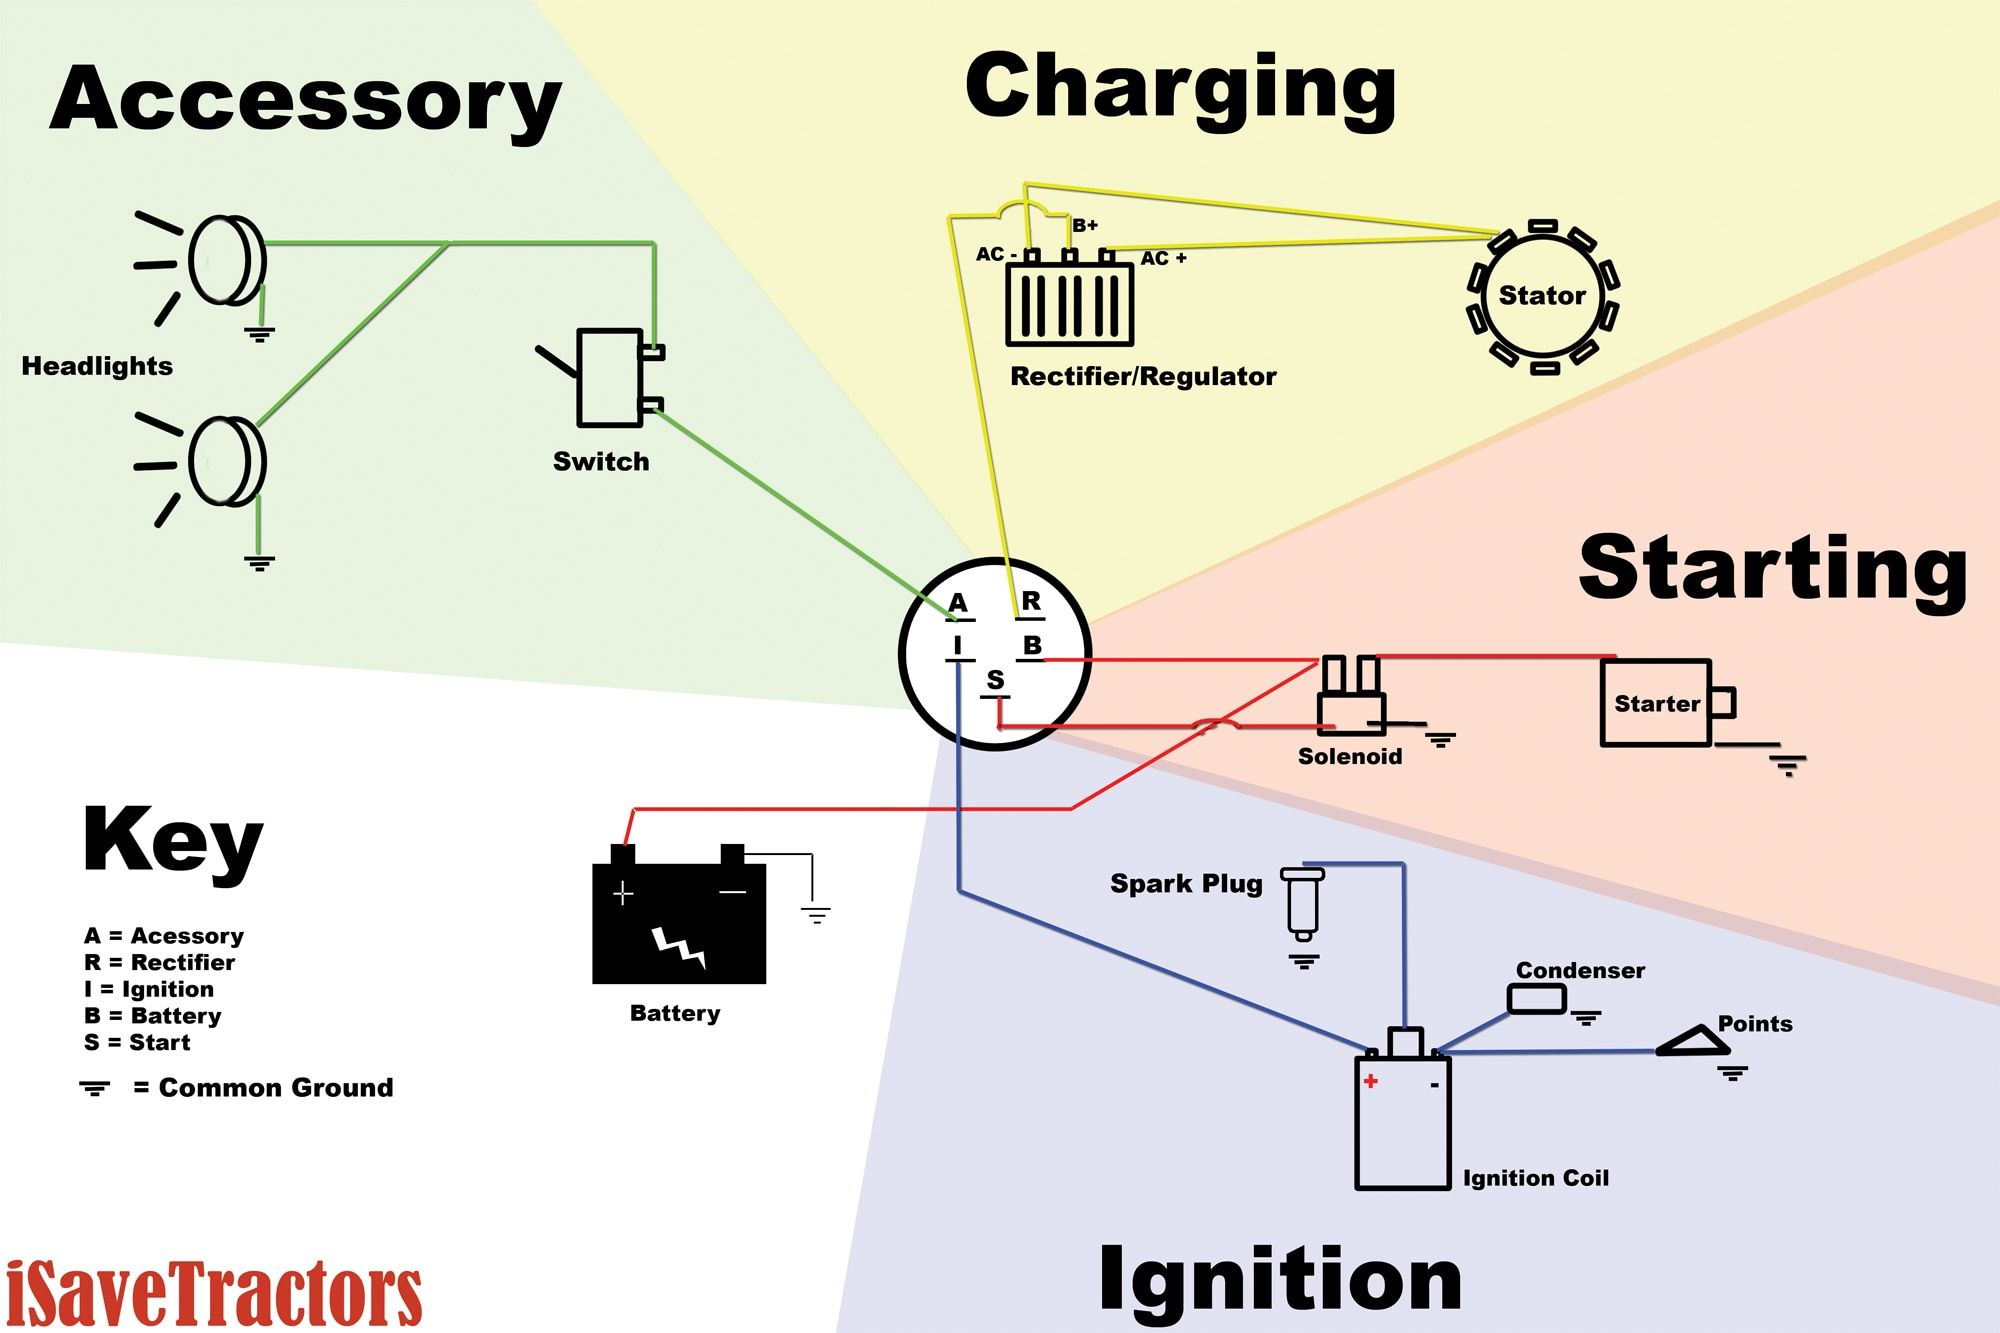 Basic Wiring Diagram For All Garden Tractors Using A Stator And Battery Ignition System In 2021 Ignition System Ignition Coil Electrical Diagram